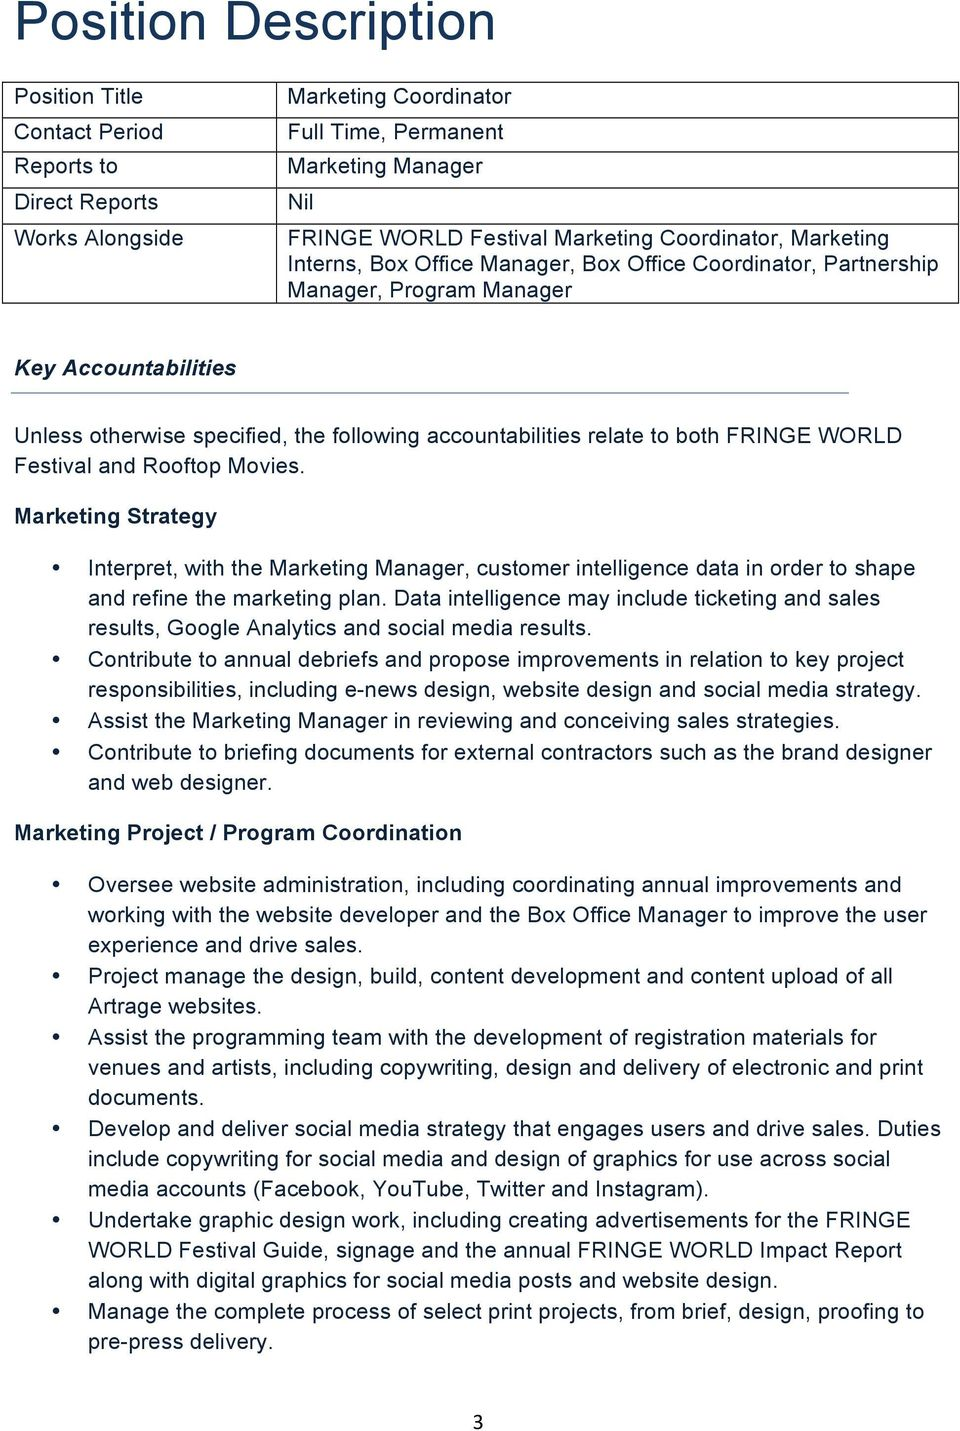 to both FRINGE WORLD Festival and Rooftop Movies. Marketing Strategy Interpret, with the Marketing Manager, customer intelligence data in order to shape and refine the marketing plan.